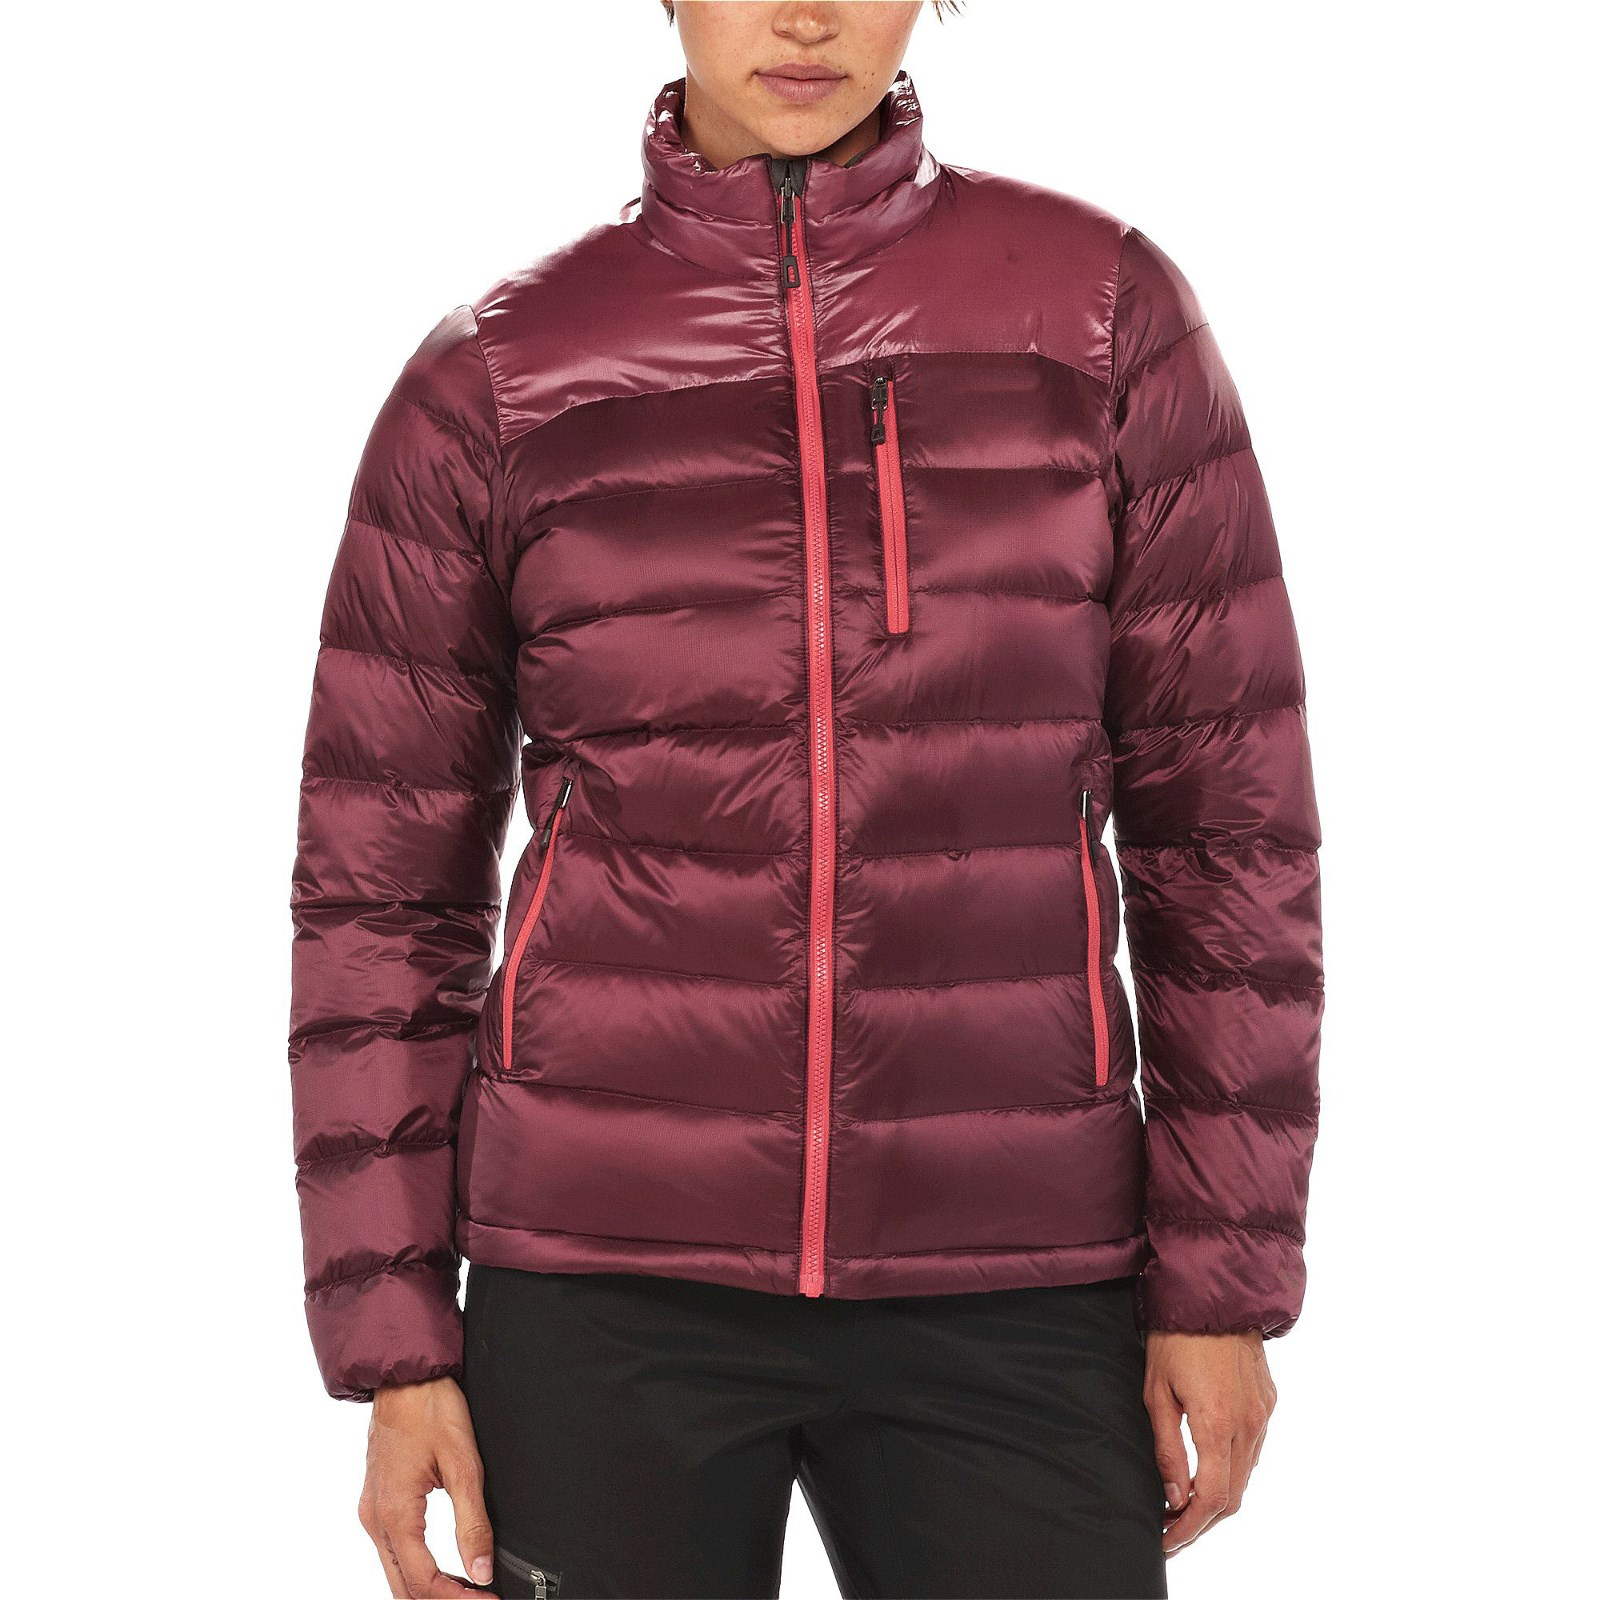 Women Fitz Roy Down Jacket(blue-wine) Manufacturers, Women Fitz Roy Down Jacket(blue-wine) Factory, Supply Women Fitz Roy Down Jacket(blue-wine)